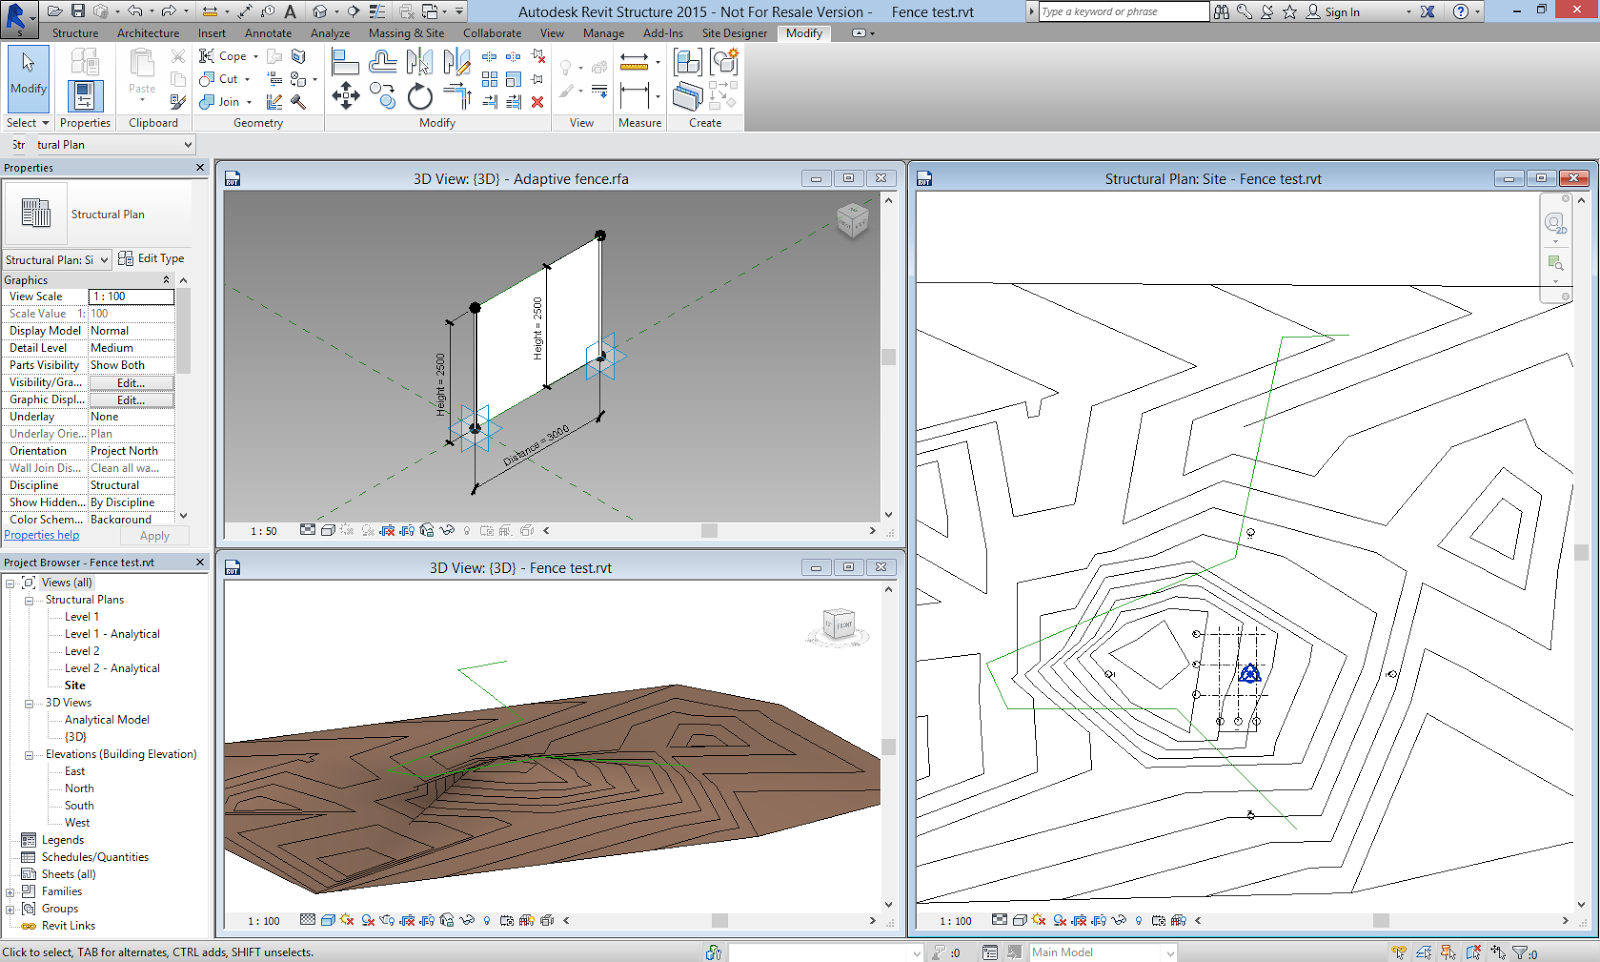 Site Plan Revit : Revit dynamite and ammo hardscape on topography the